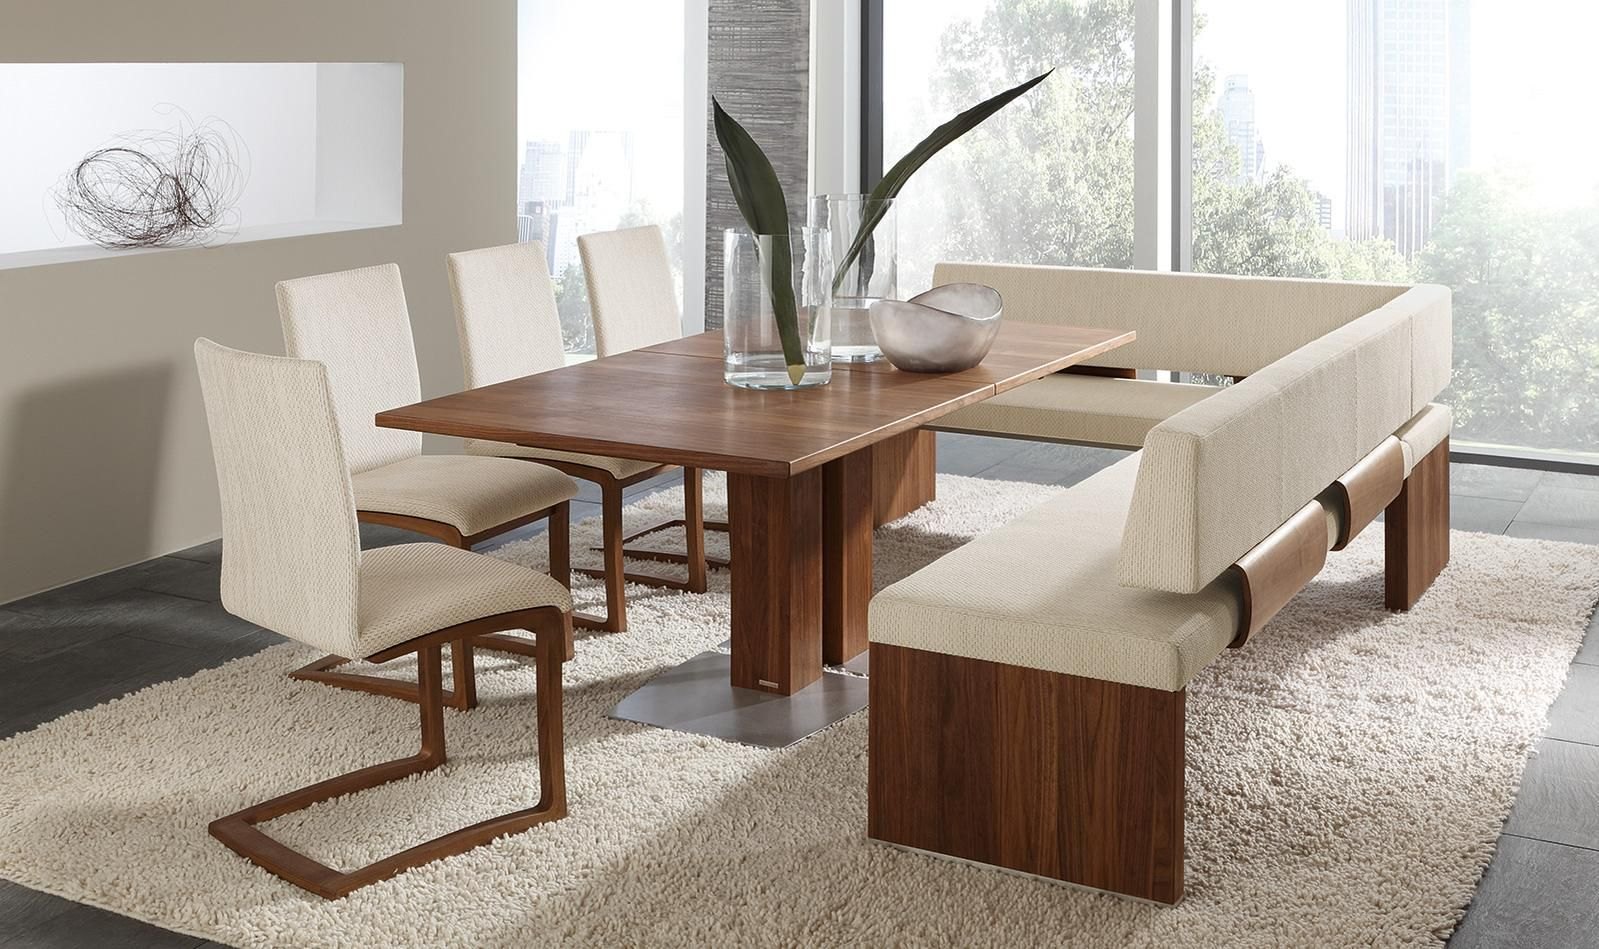 modern kitchen table set. Modern Bench Style Dining Table Set Ideas | HomesFeed Room Pinterest Set, And Kitchen